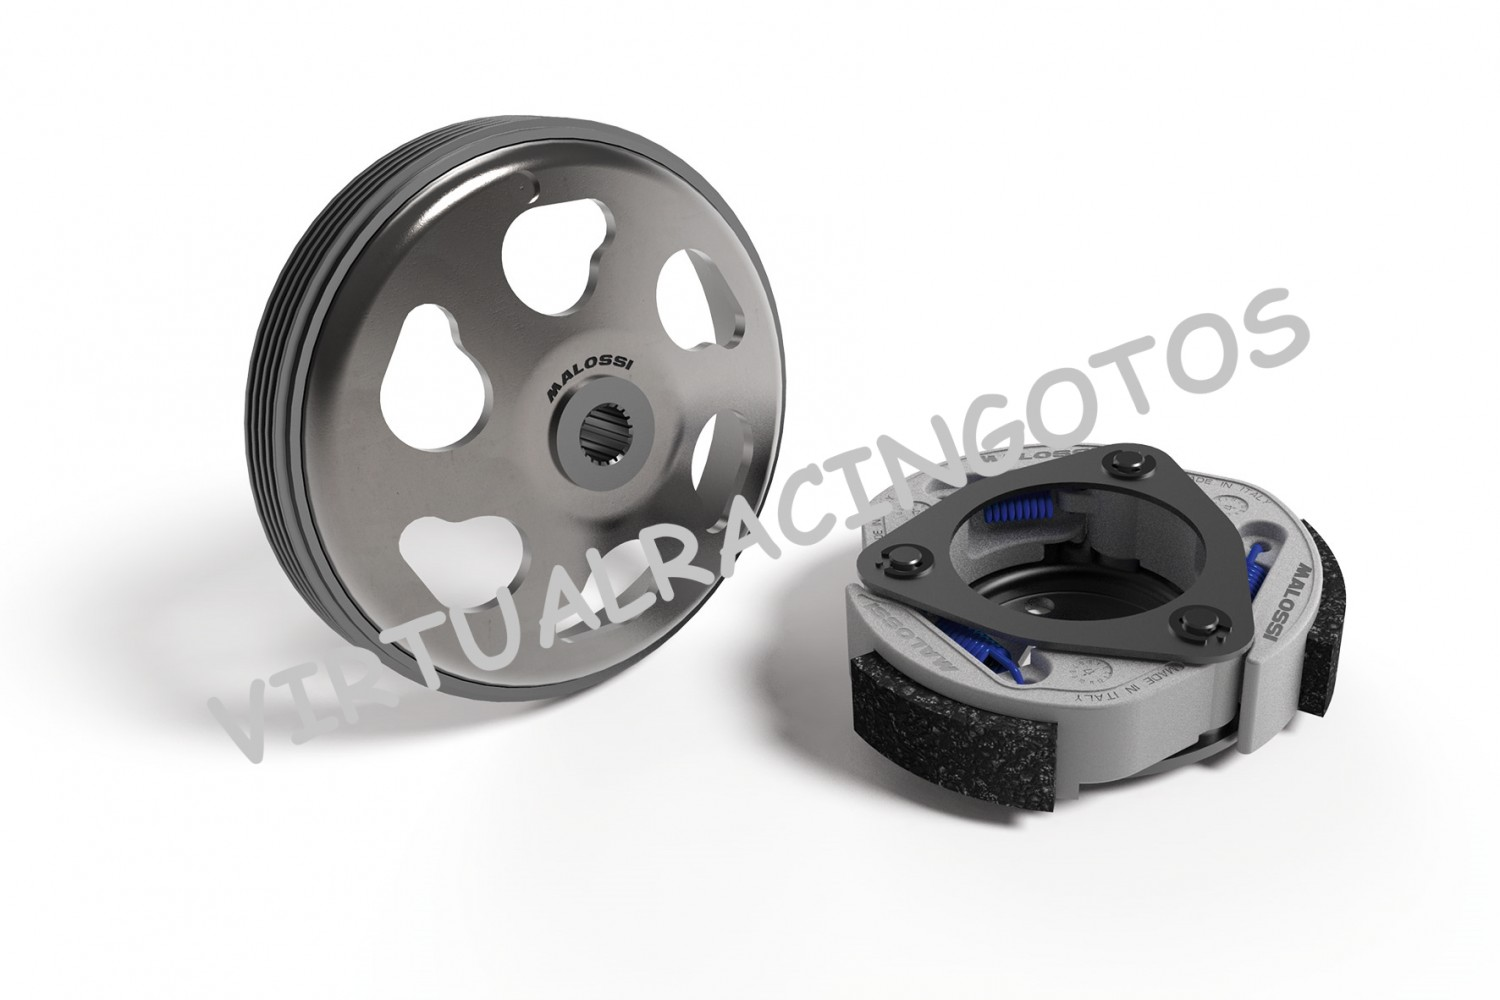 KIT EMBRAGUE + CAMPANA MALOSSI MAXI FLY SYSTEM PARA KYMCO SUPER DINK 125cc ie 4T LC EURO3  5217363